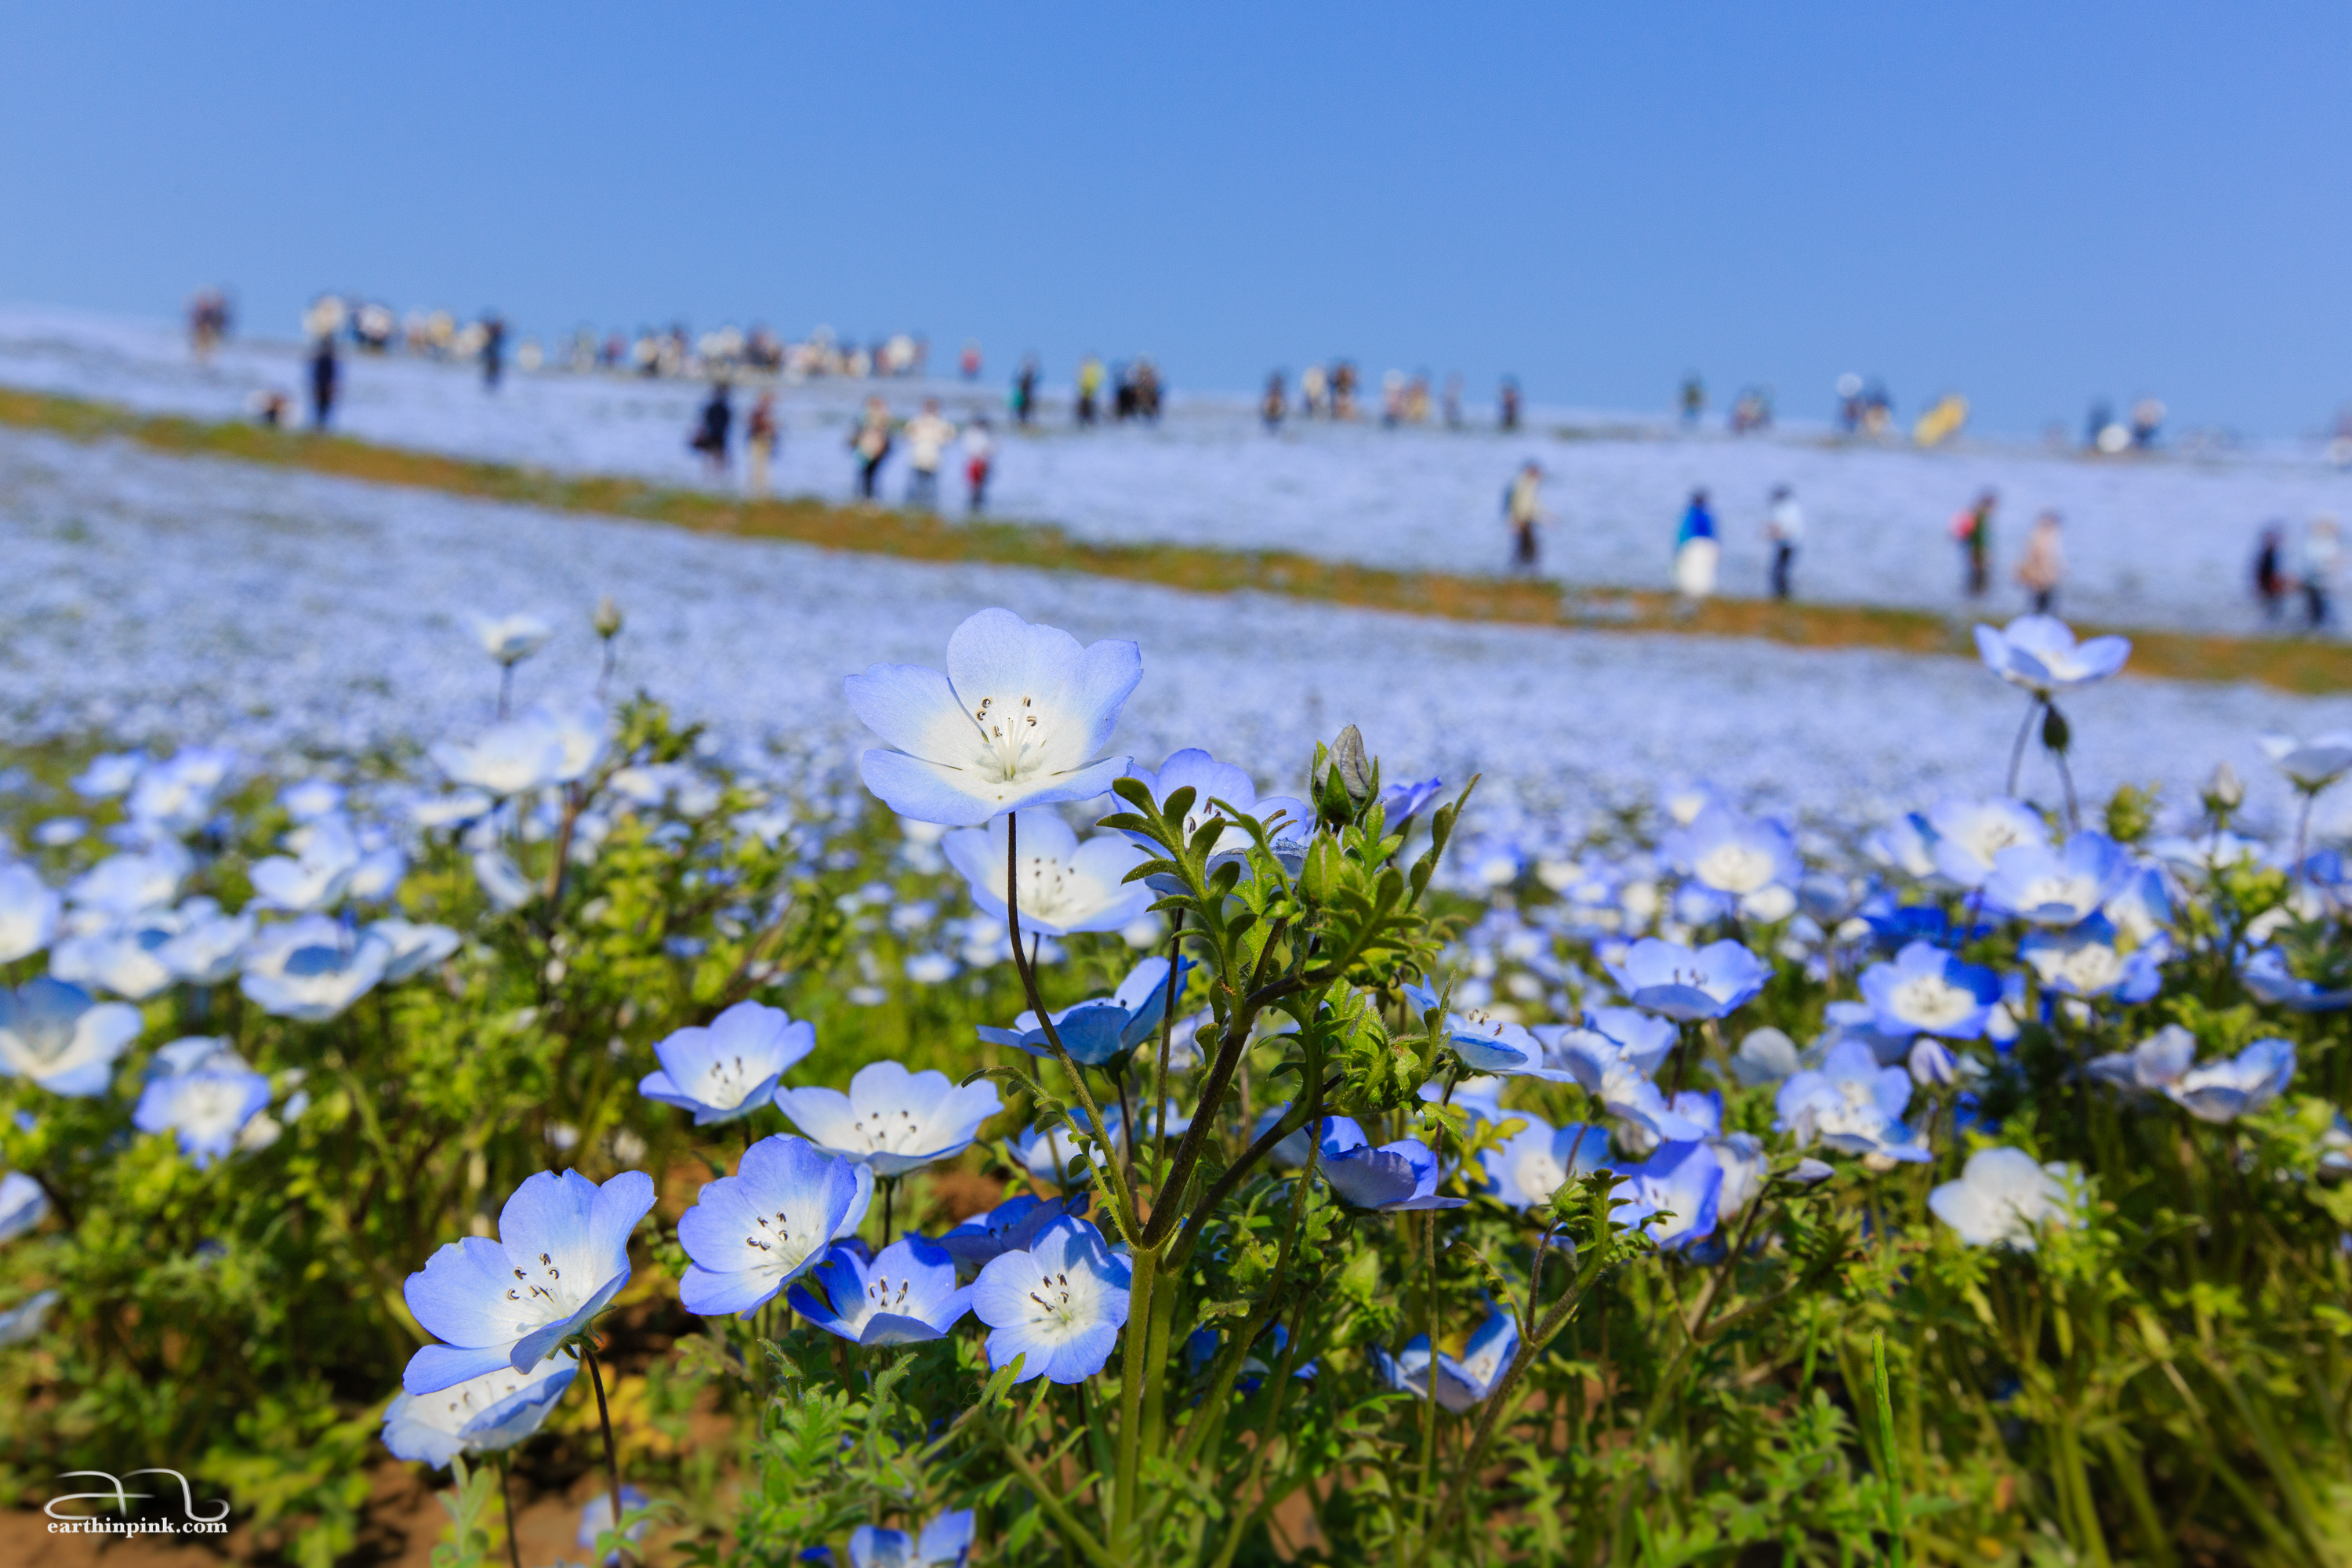 The ground and the sky become one at Hitachi Seaside park, Ibaraki.